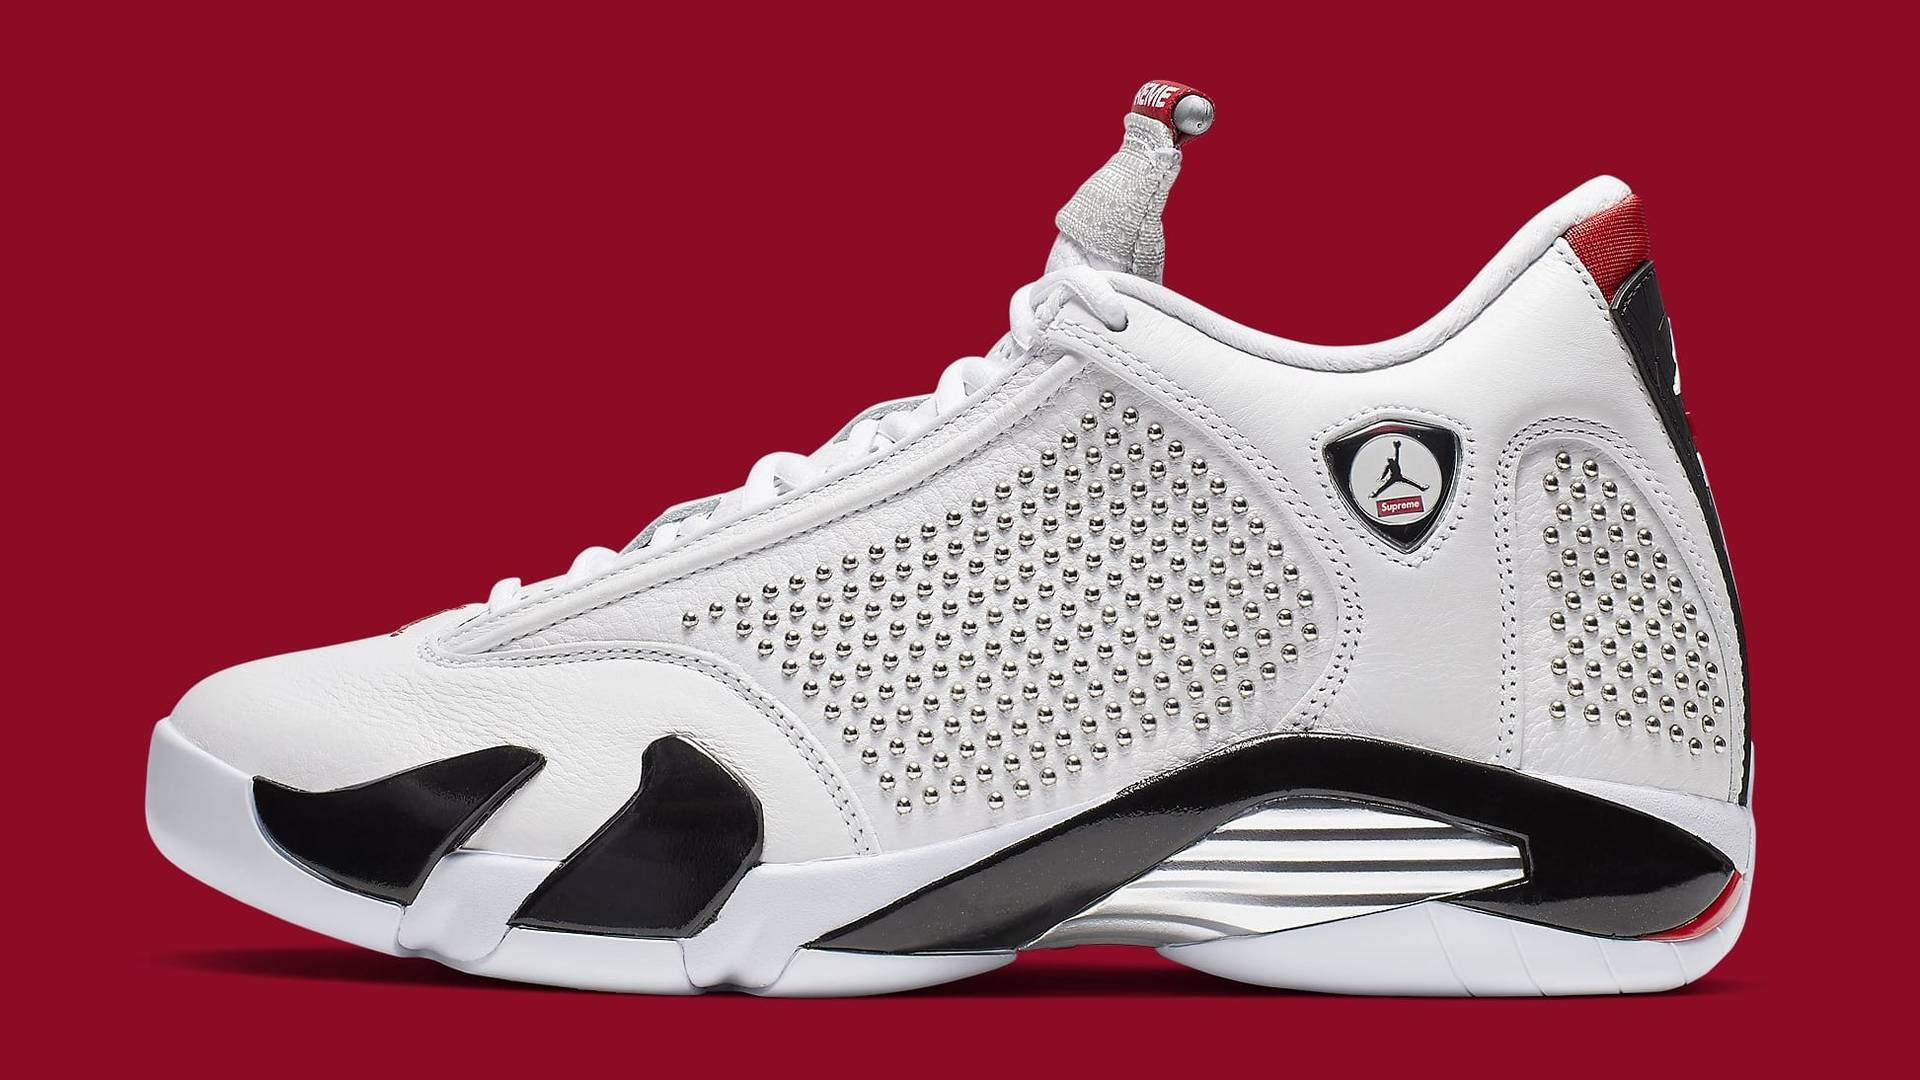 Supreme Air Jordan 14 Releasing Again Via Nike Purchase Link